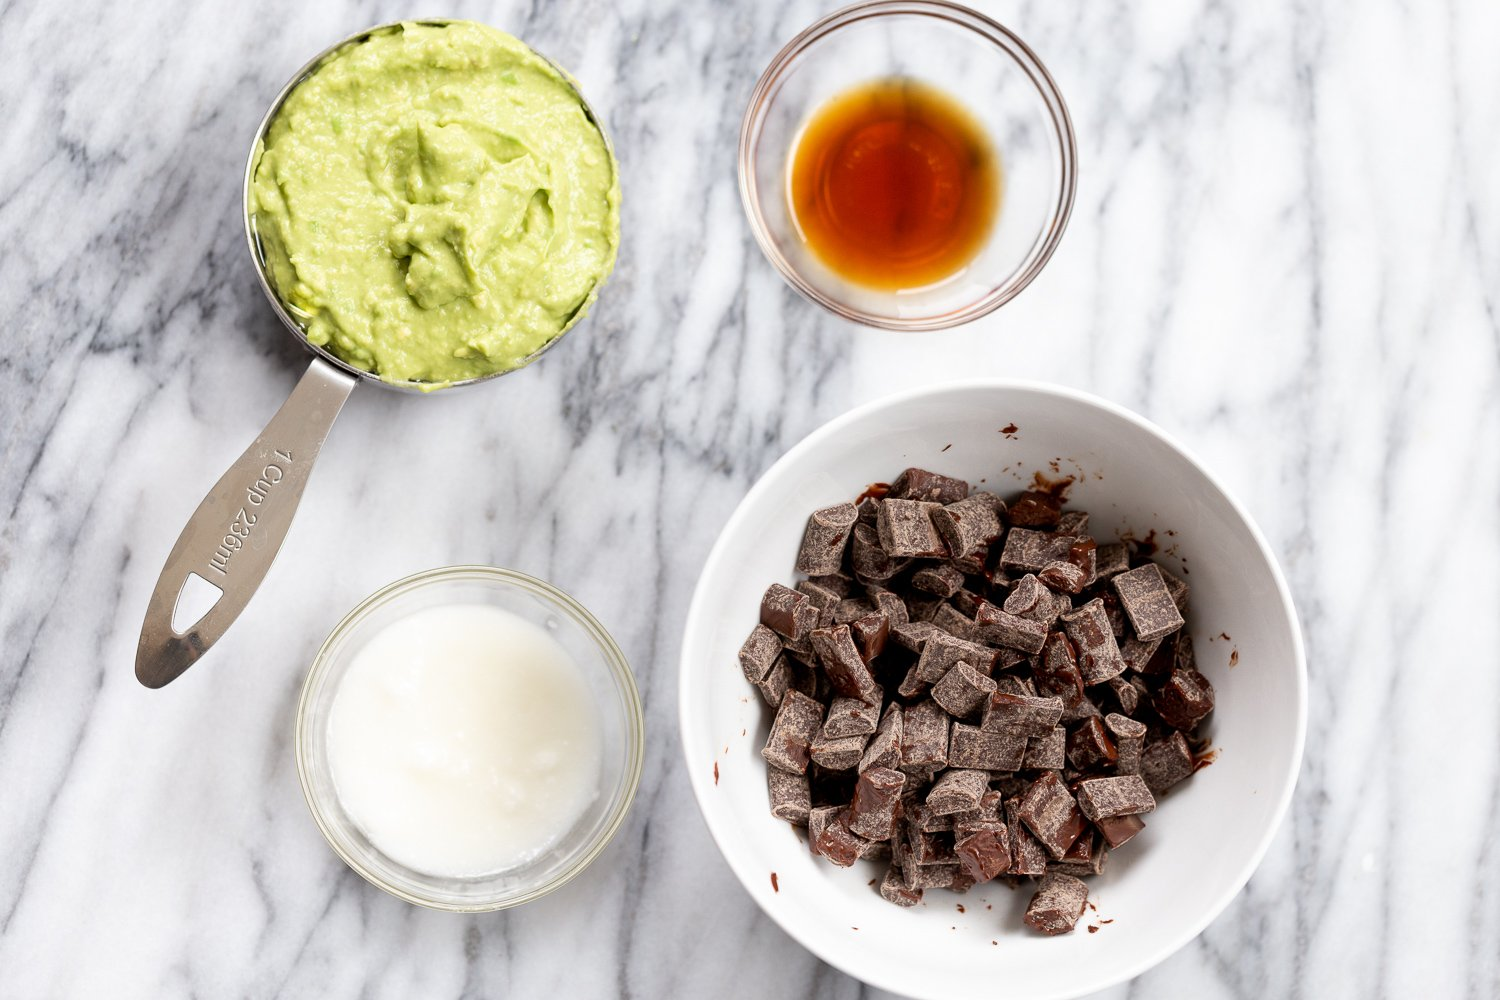 Ingredients for Vegan Chocolate Avocado freezer Fudge